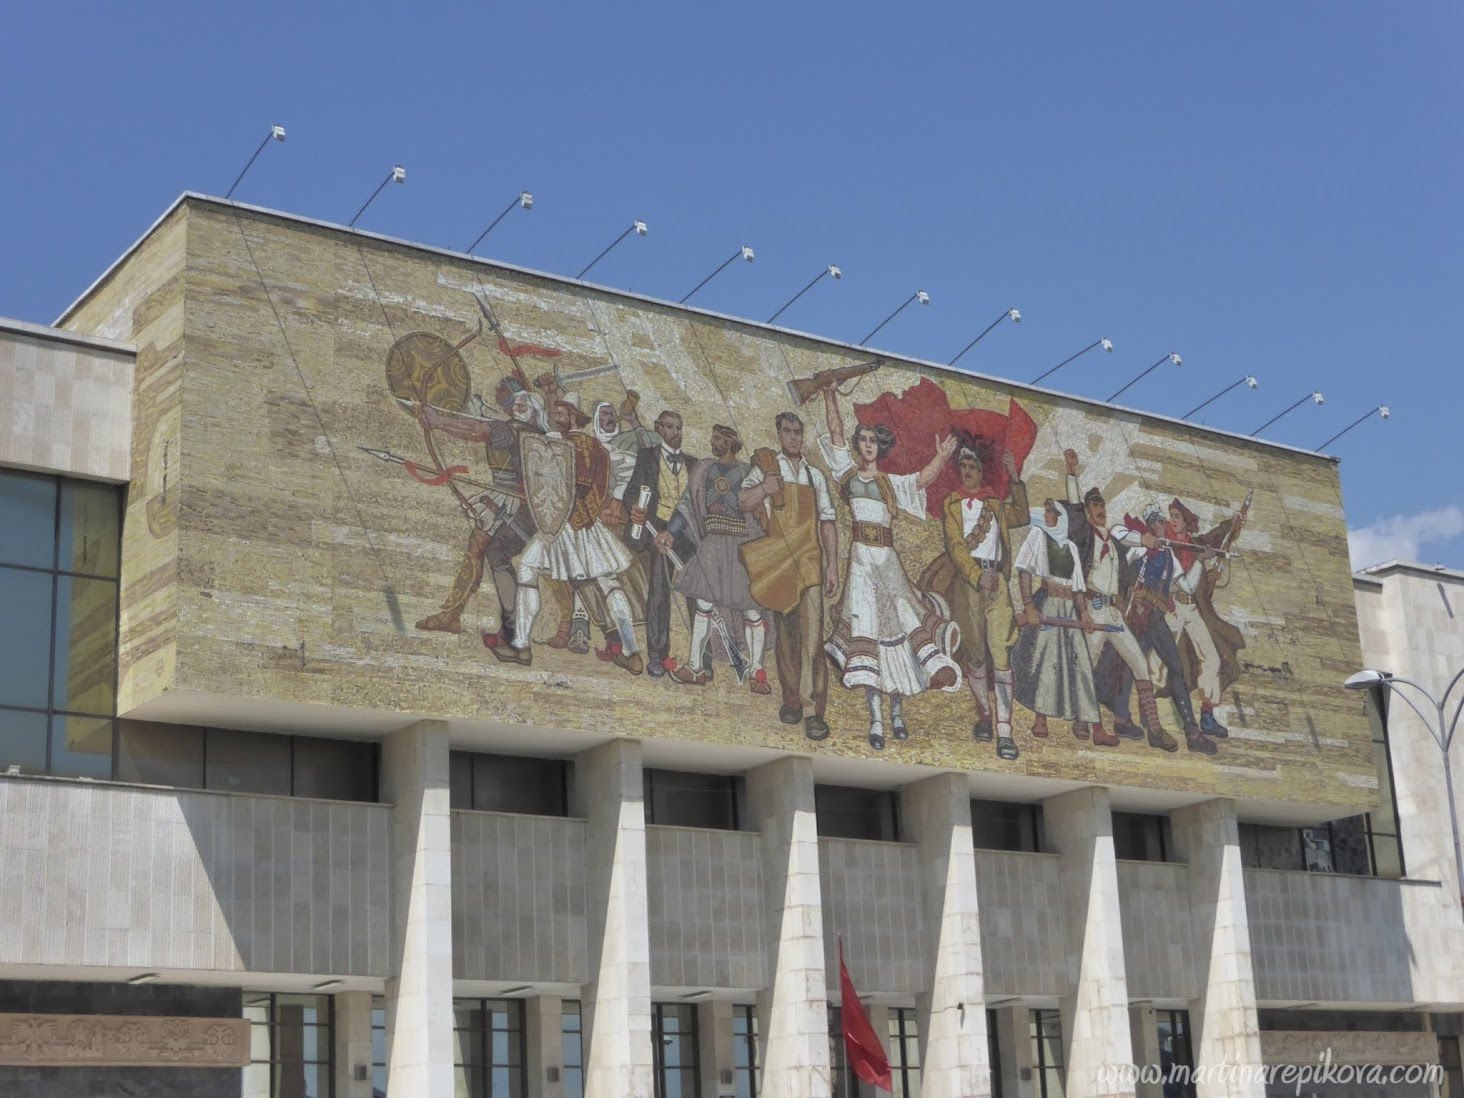 National Historical Museum with a mosaic above the entrance, Tirana, Albania